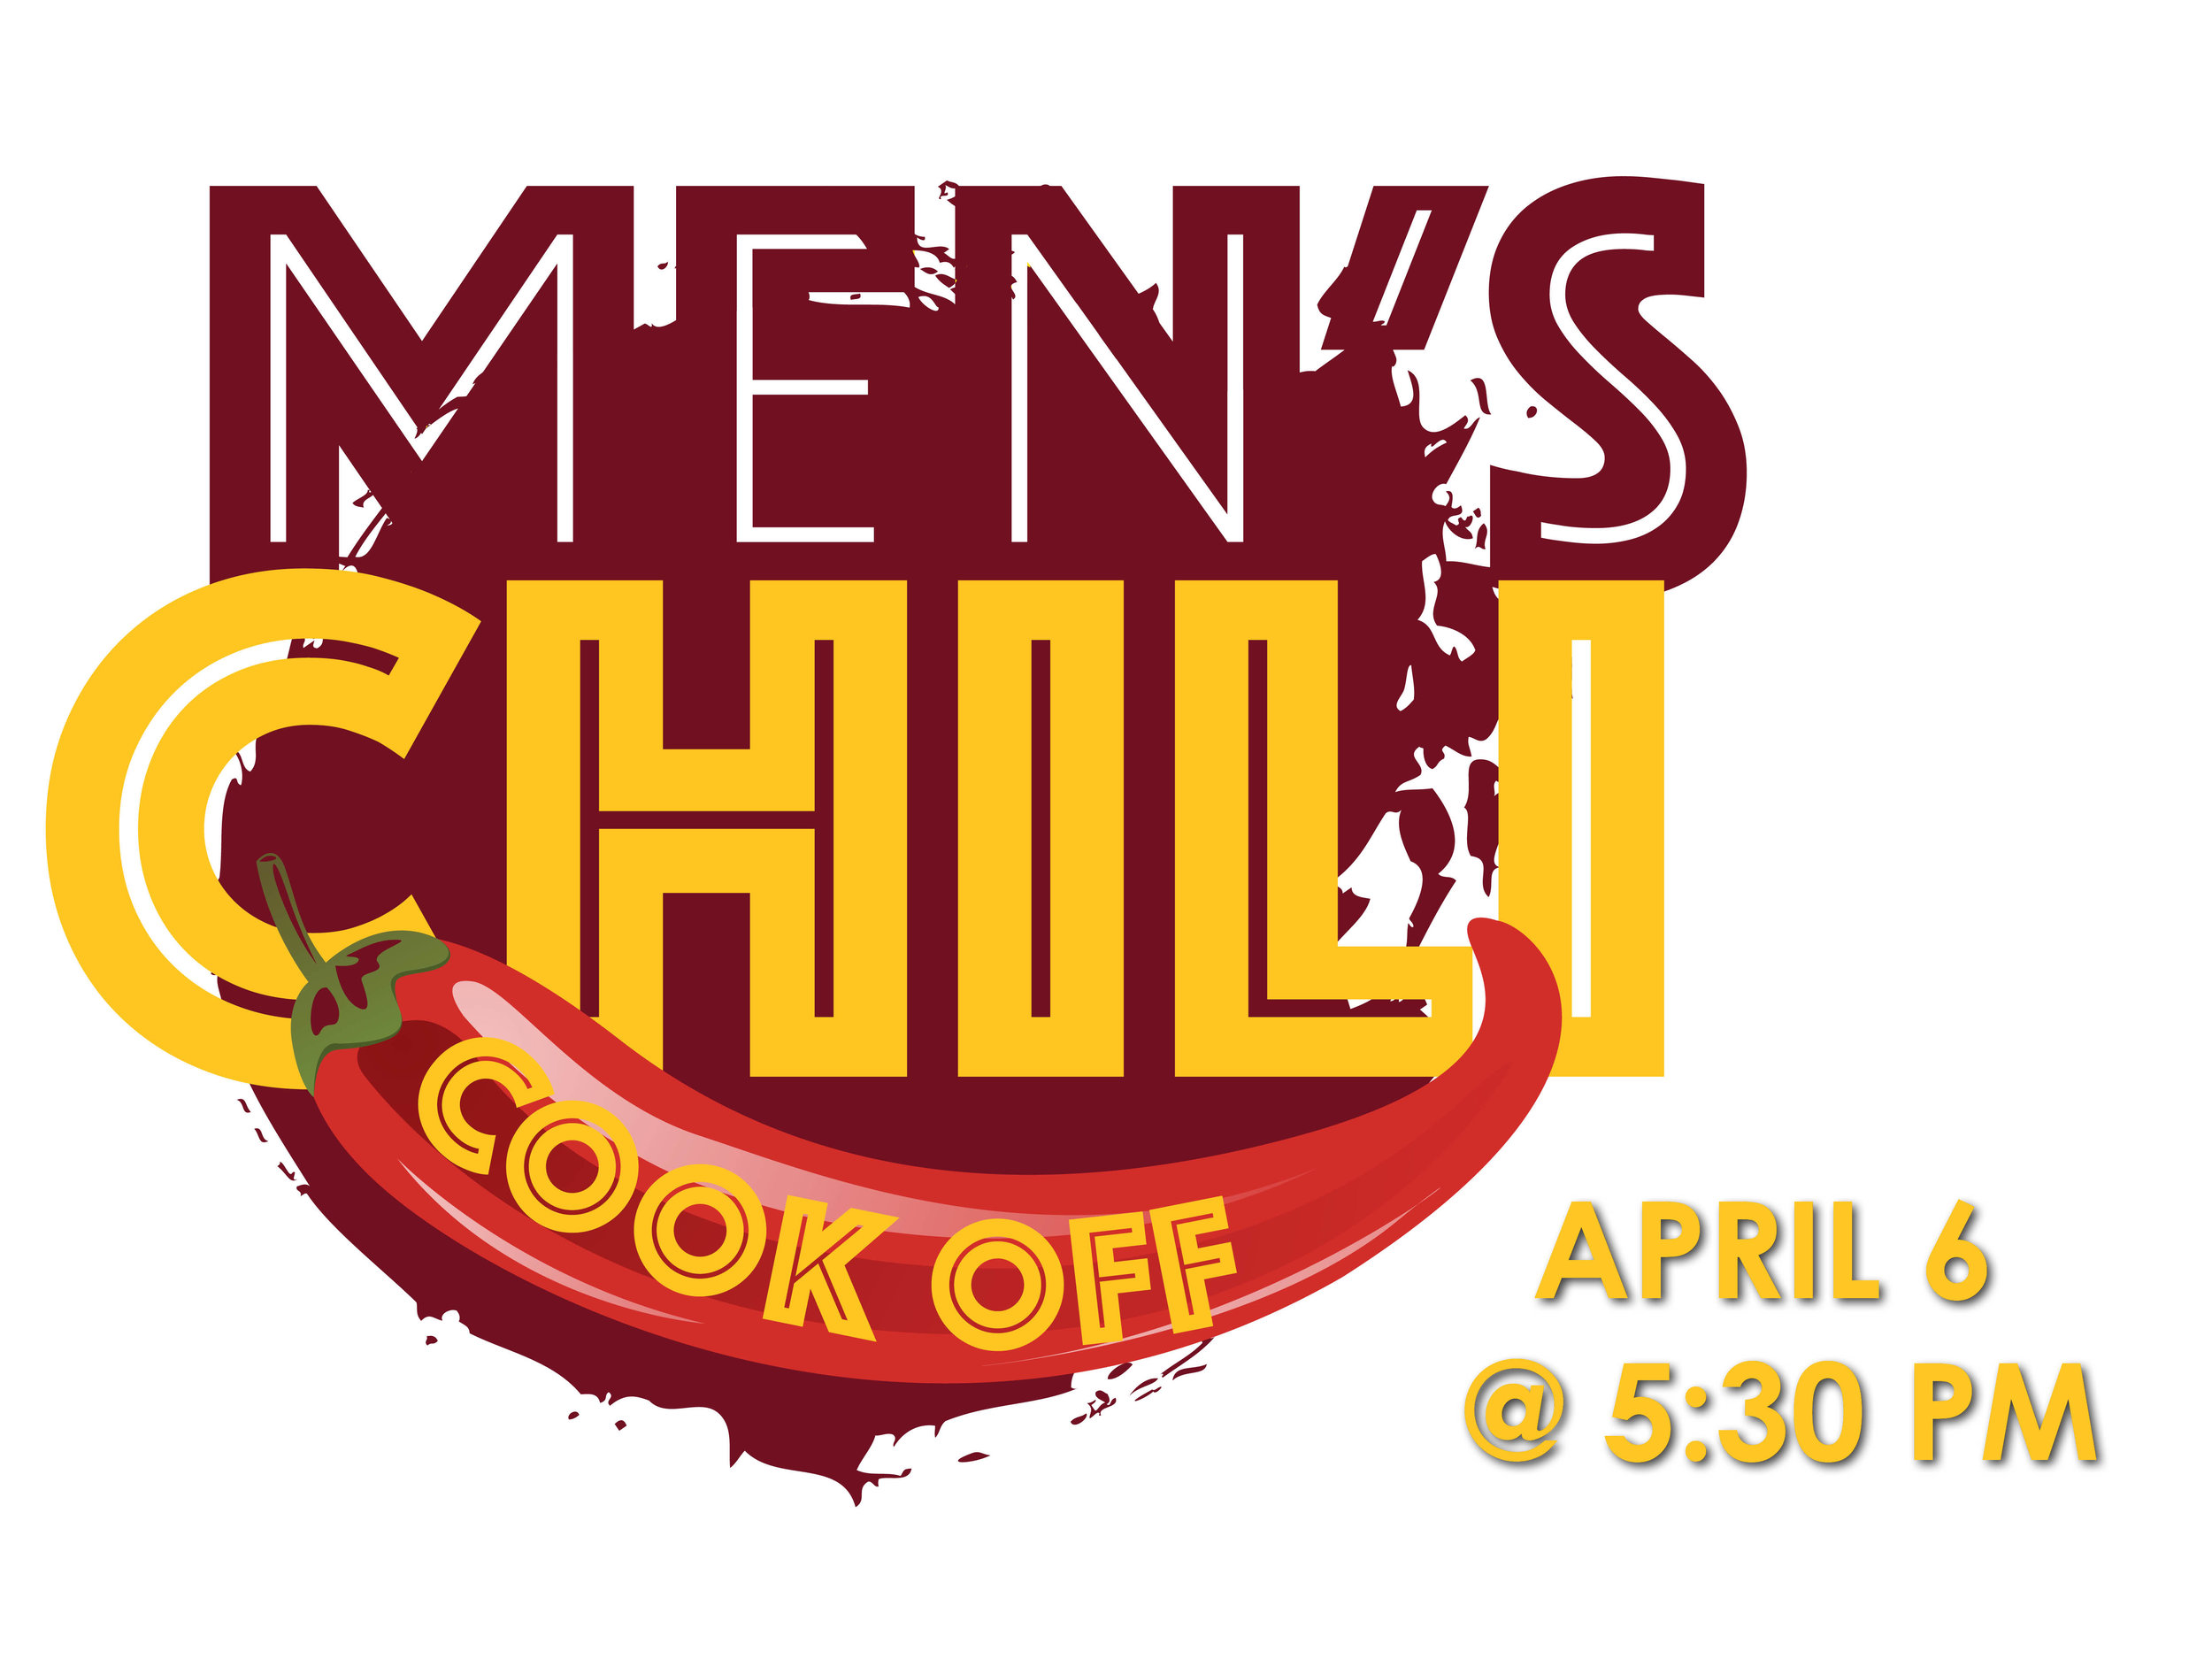 Men's Chili Cook Off PPT.jpg